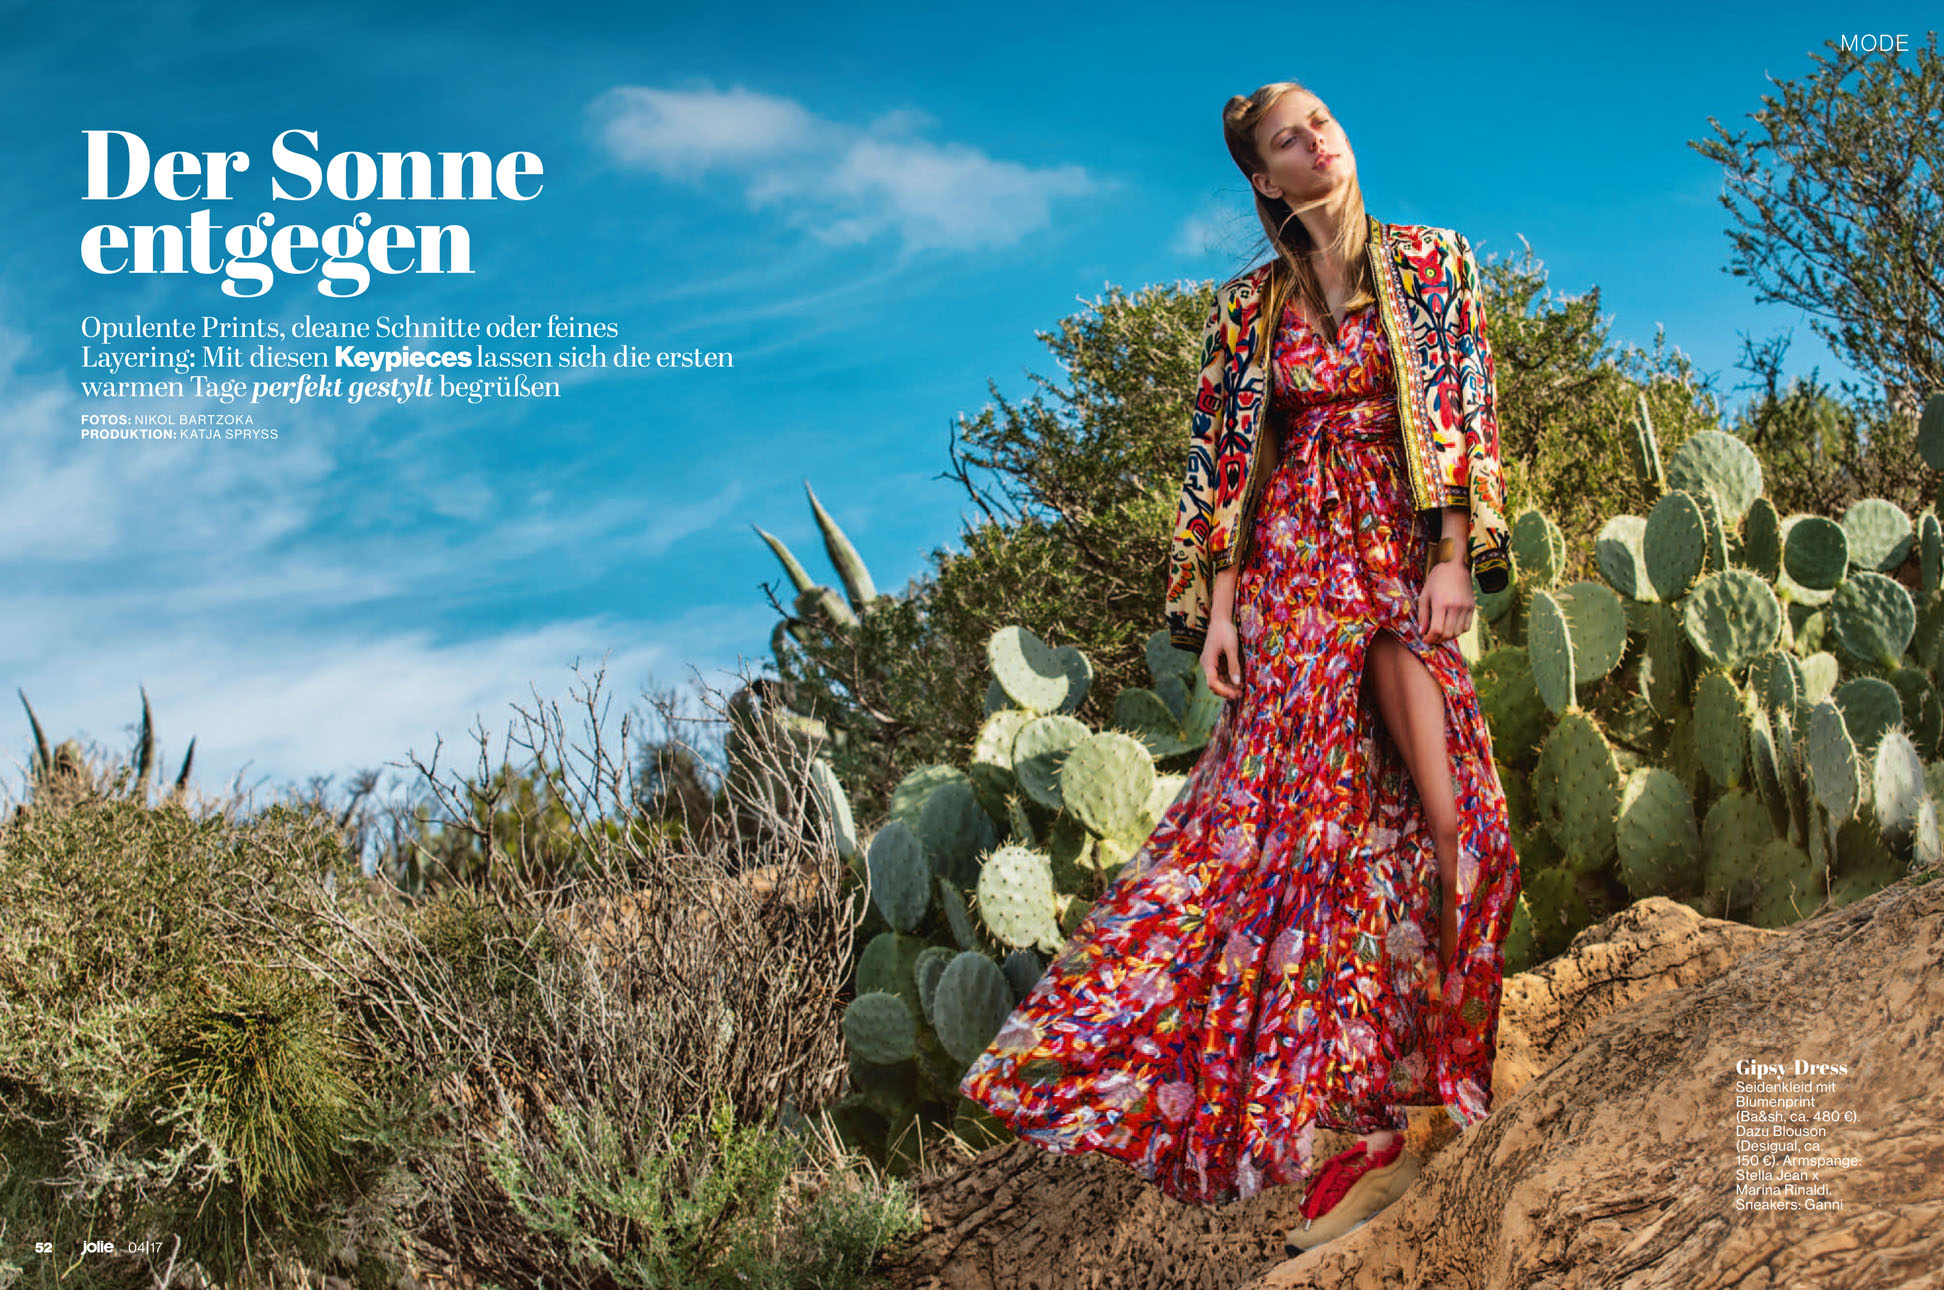 Savoring the first spring breeze with Sasha for Jolie mag.